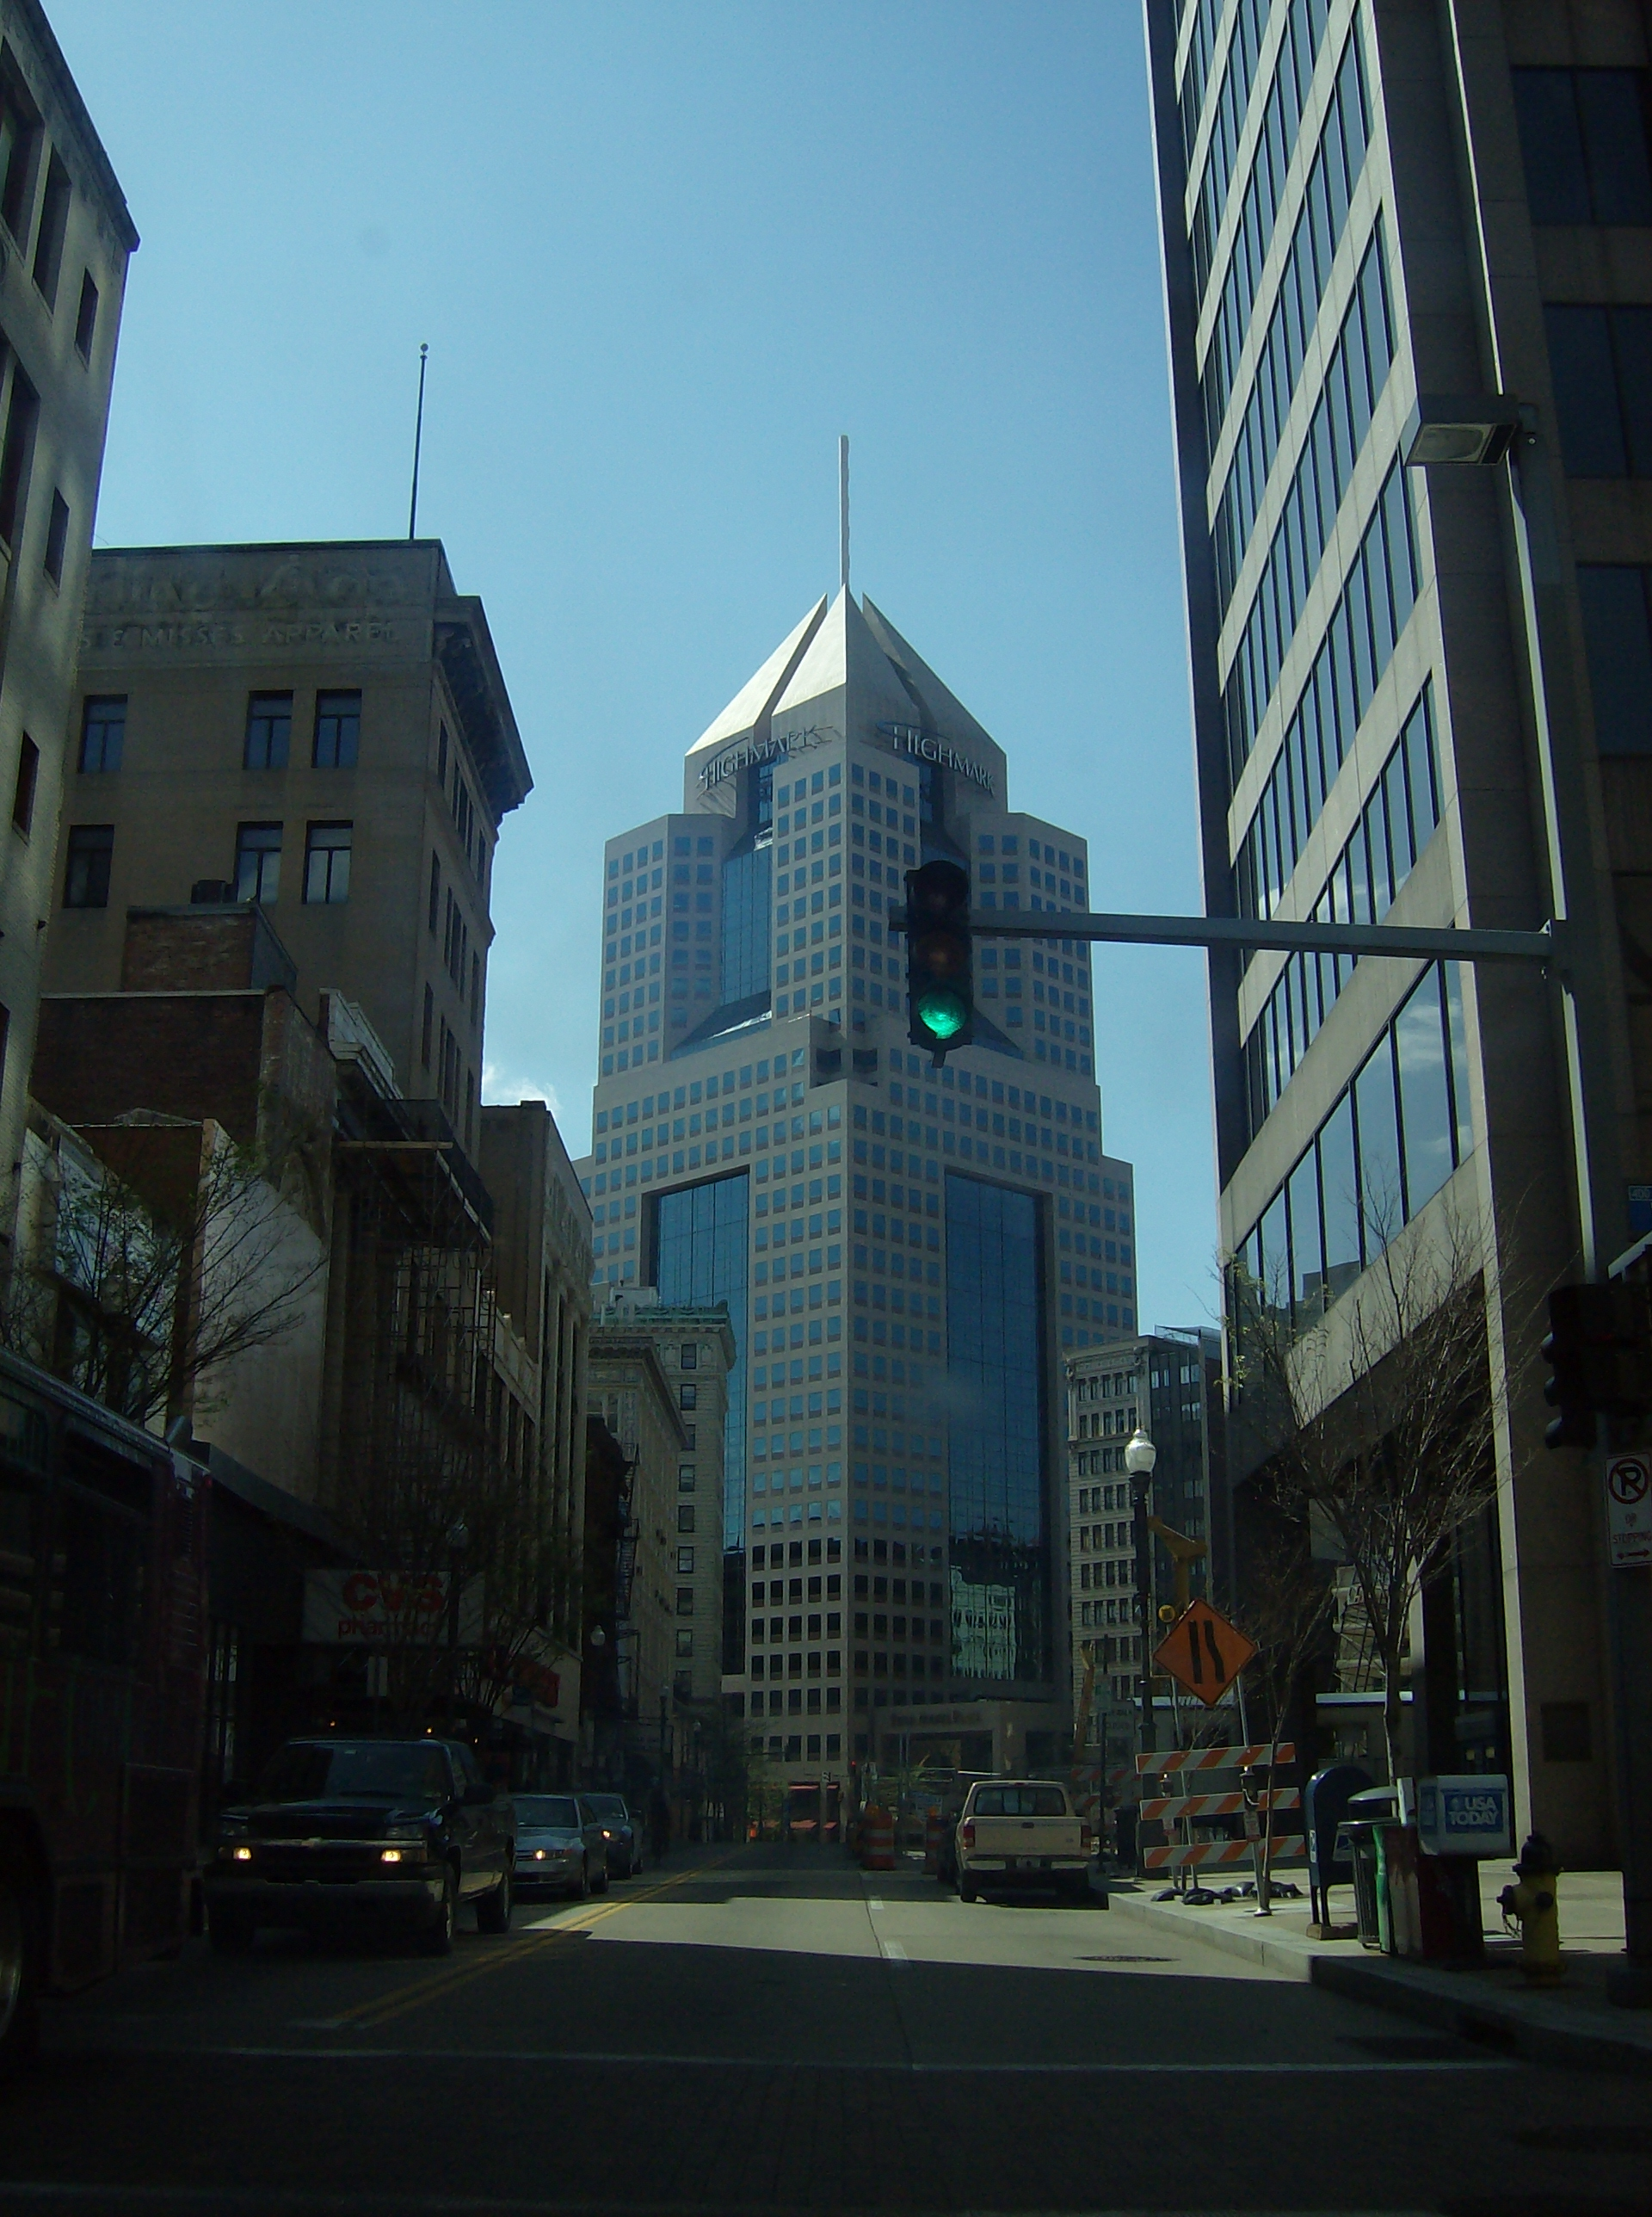 Highmark - Wikipedia